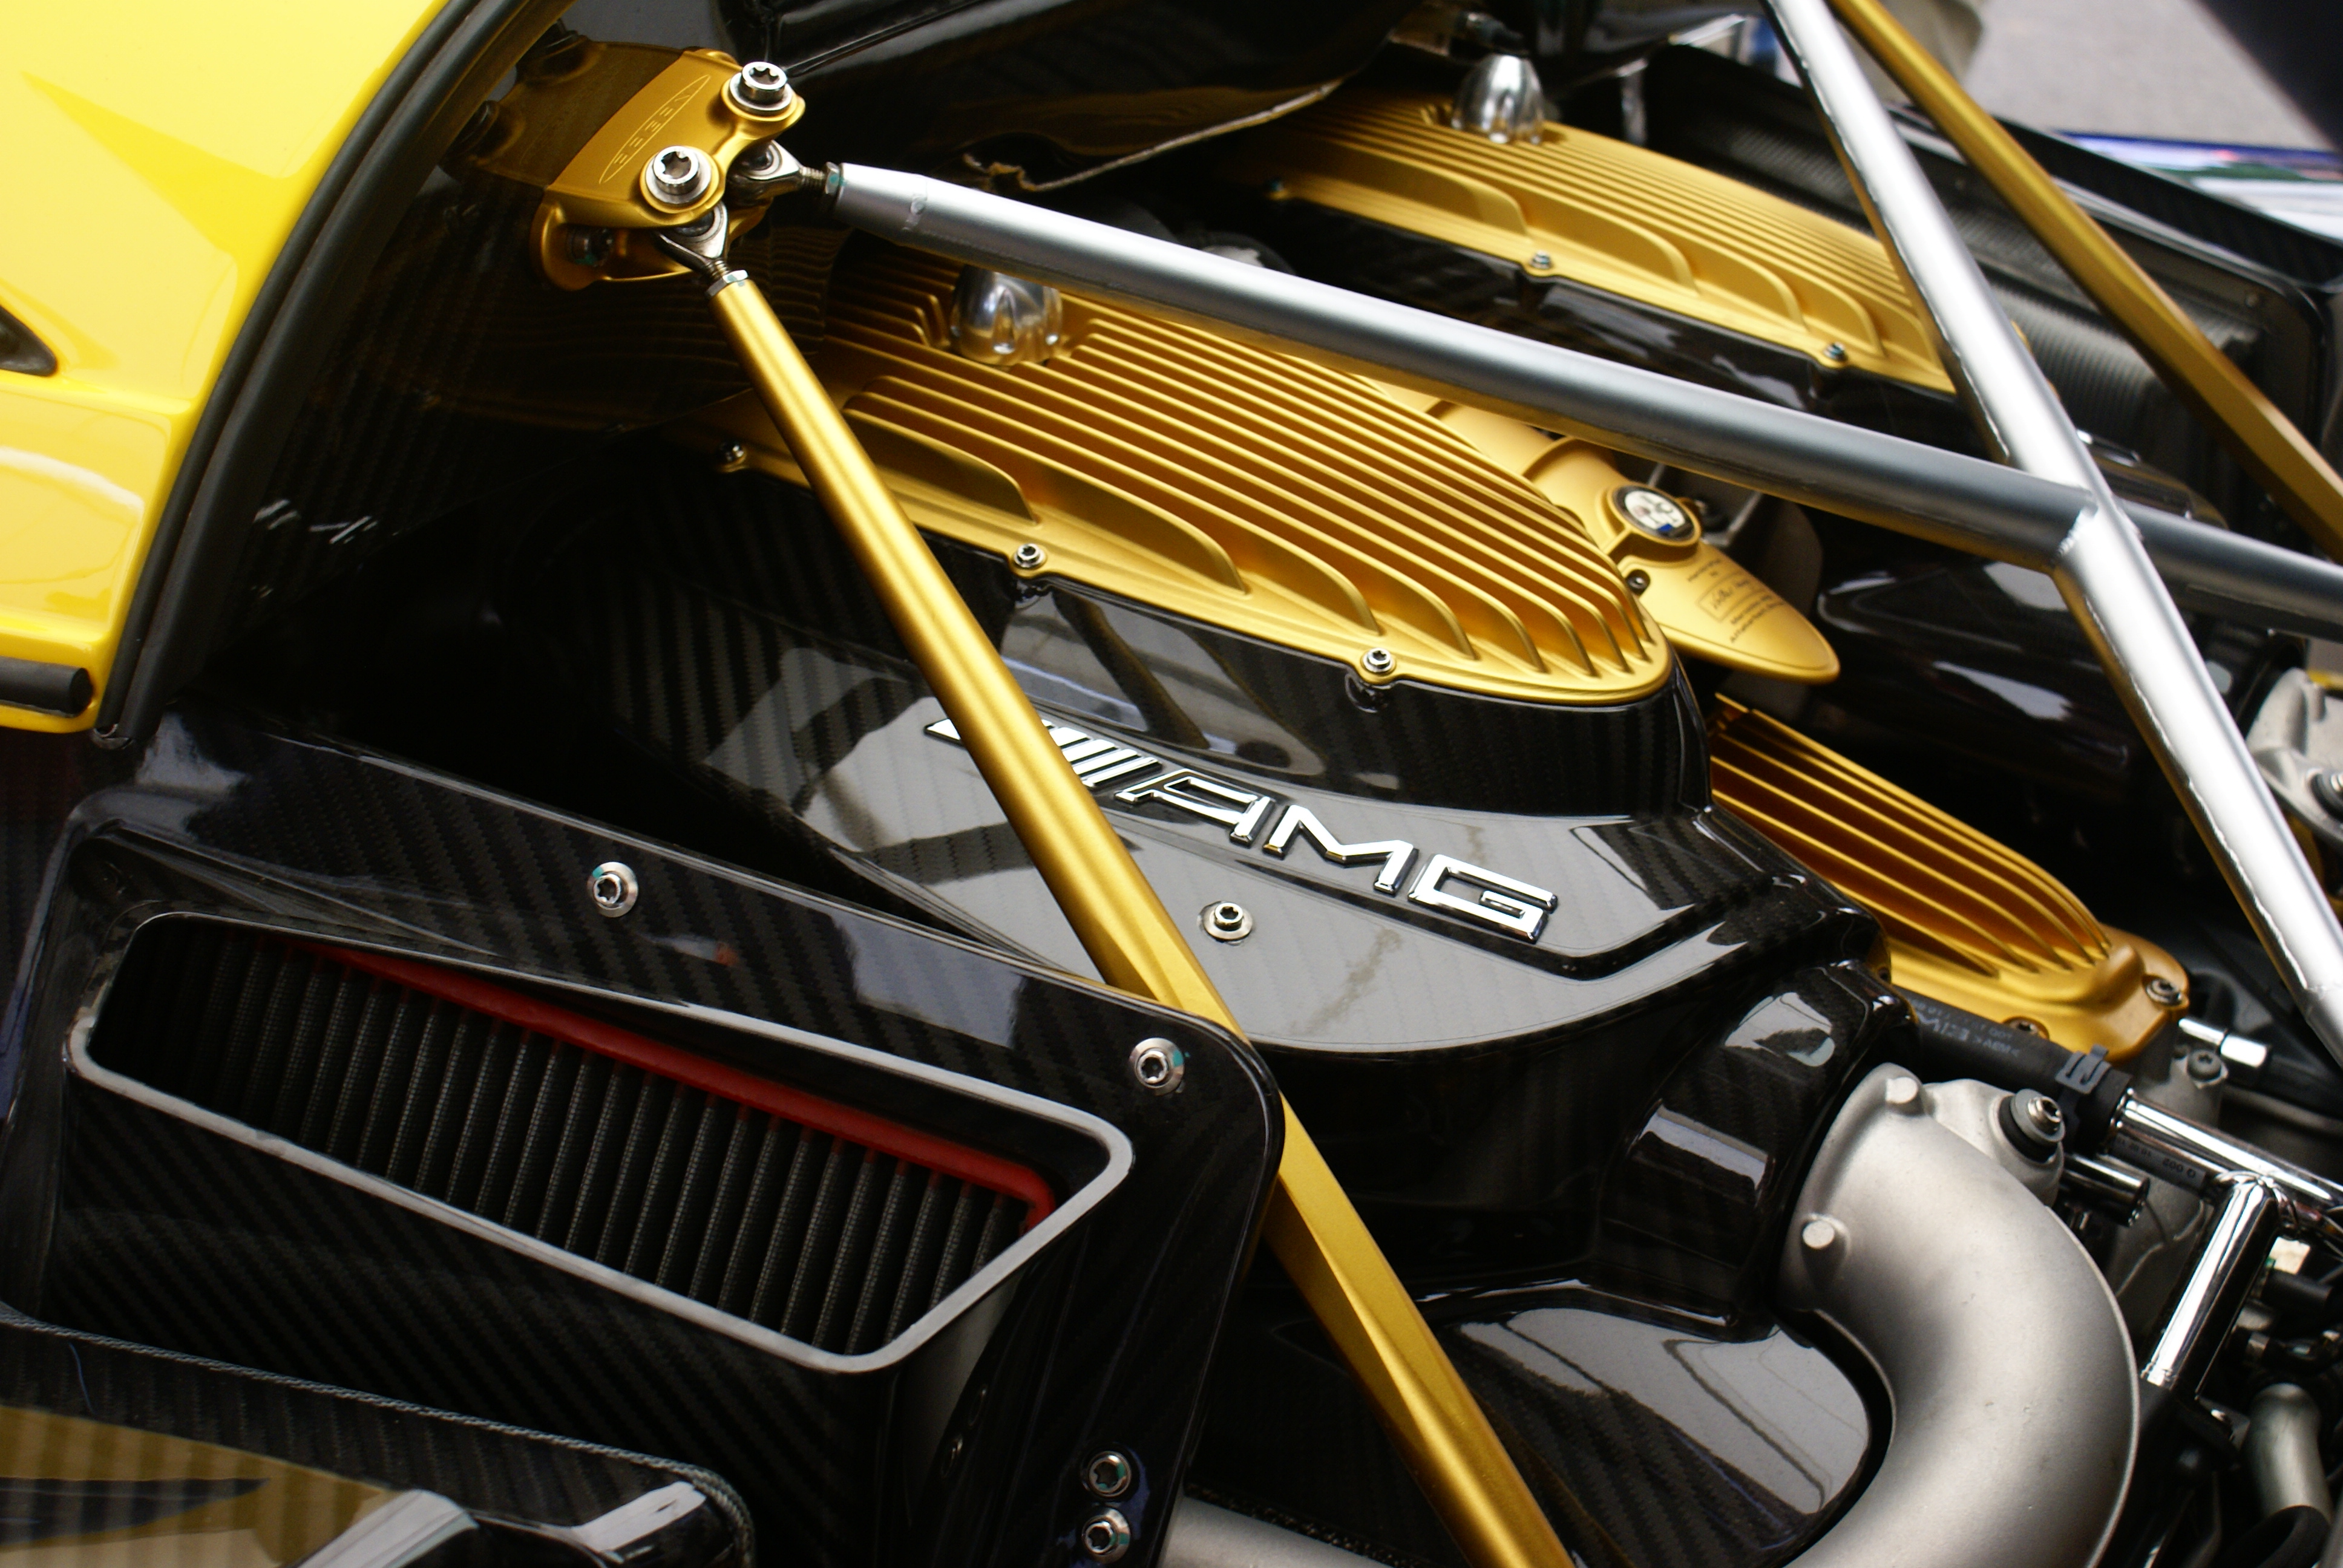 the beautiful engine bay of the pagani huayra for #photofriday